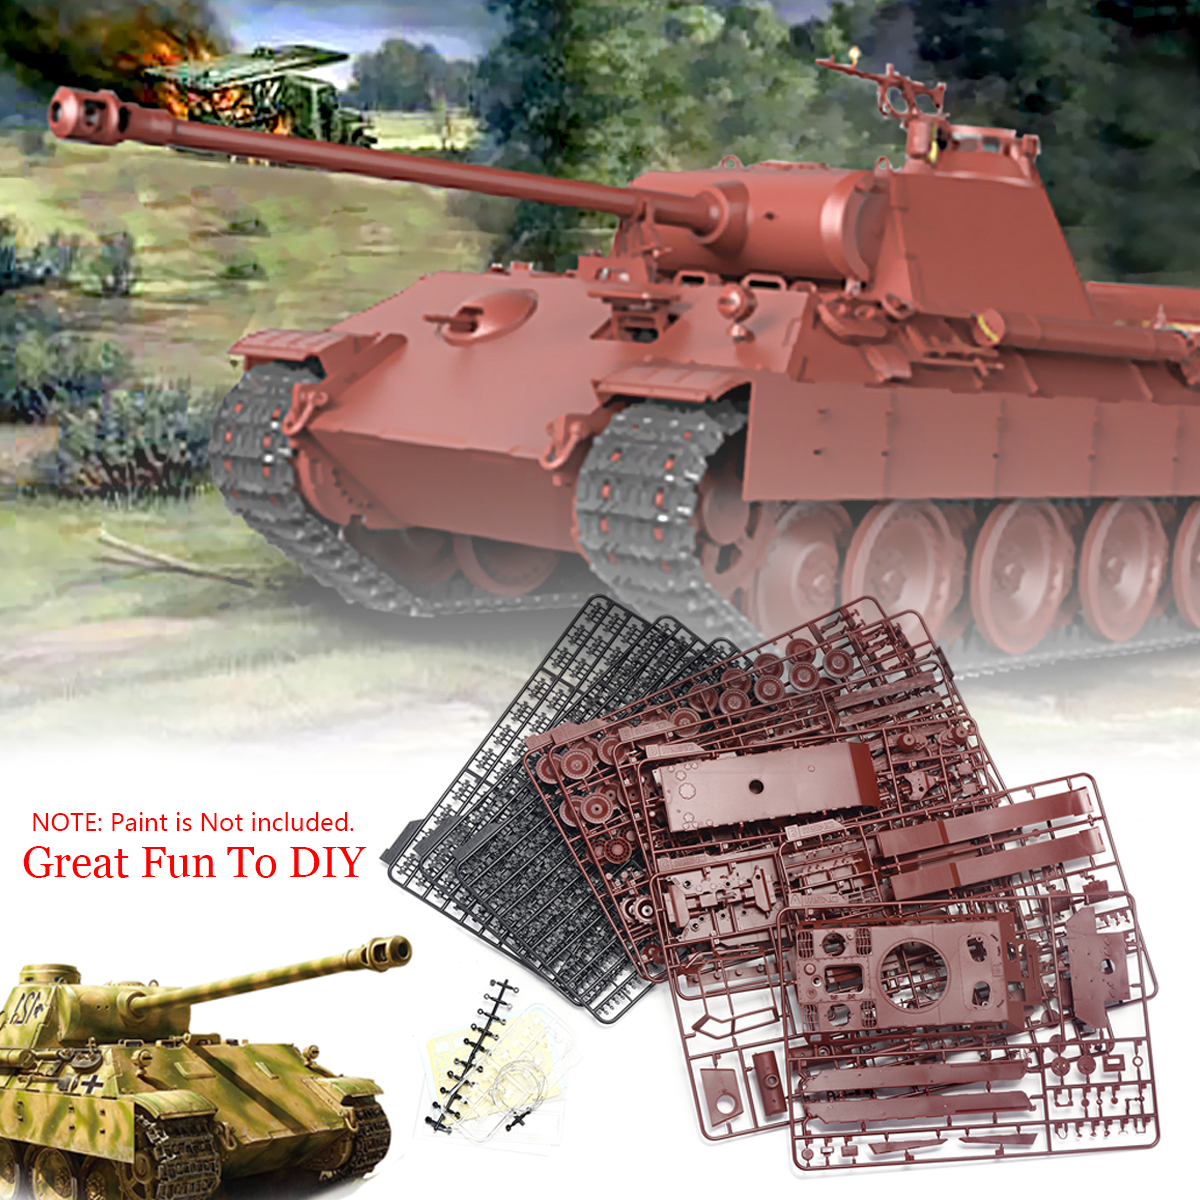 Tank Model Building Kits For Meng TS-035 Sd.Kfz.171 Panther Ausf.A Late WWII Military DIY Toy Kit Creation 1:35 Great Fun